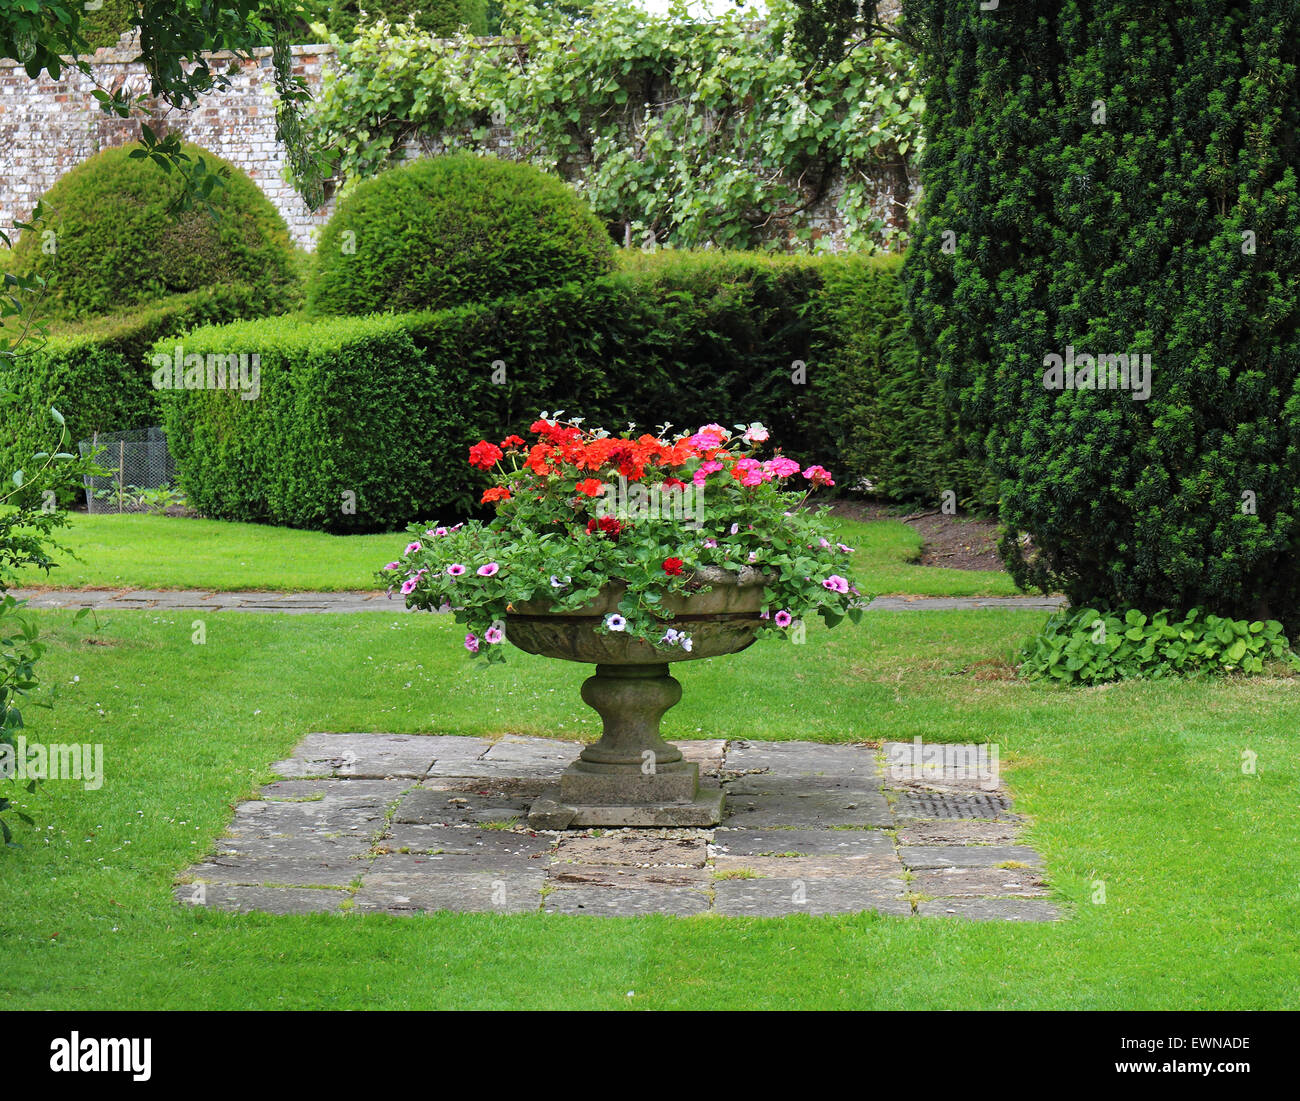 English walled Garden with flower filled planter and topiary hedging - Stock Image